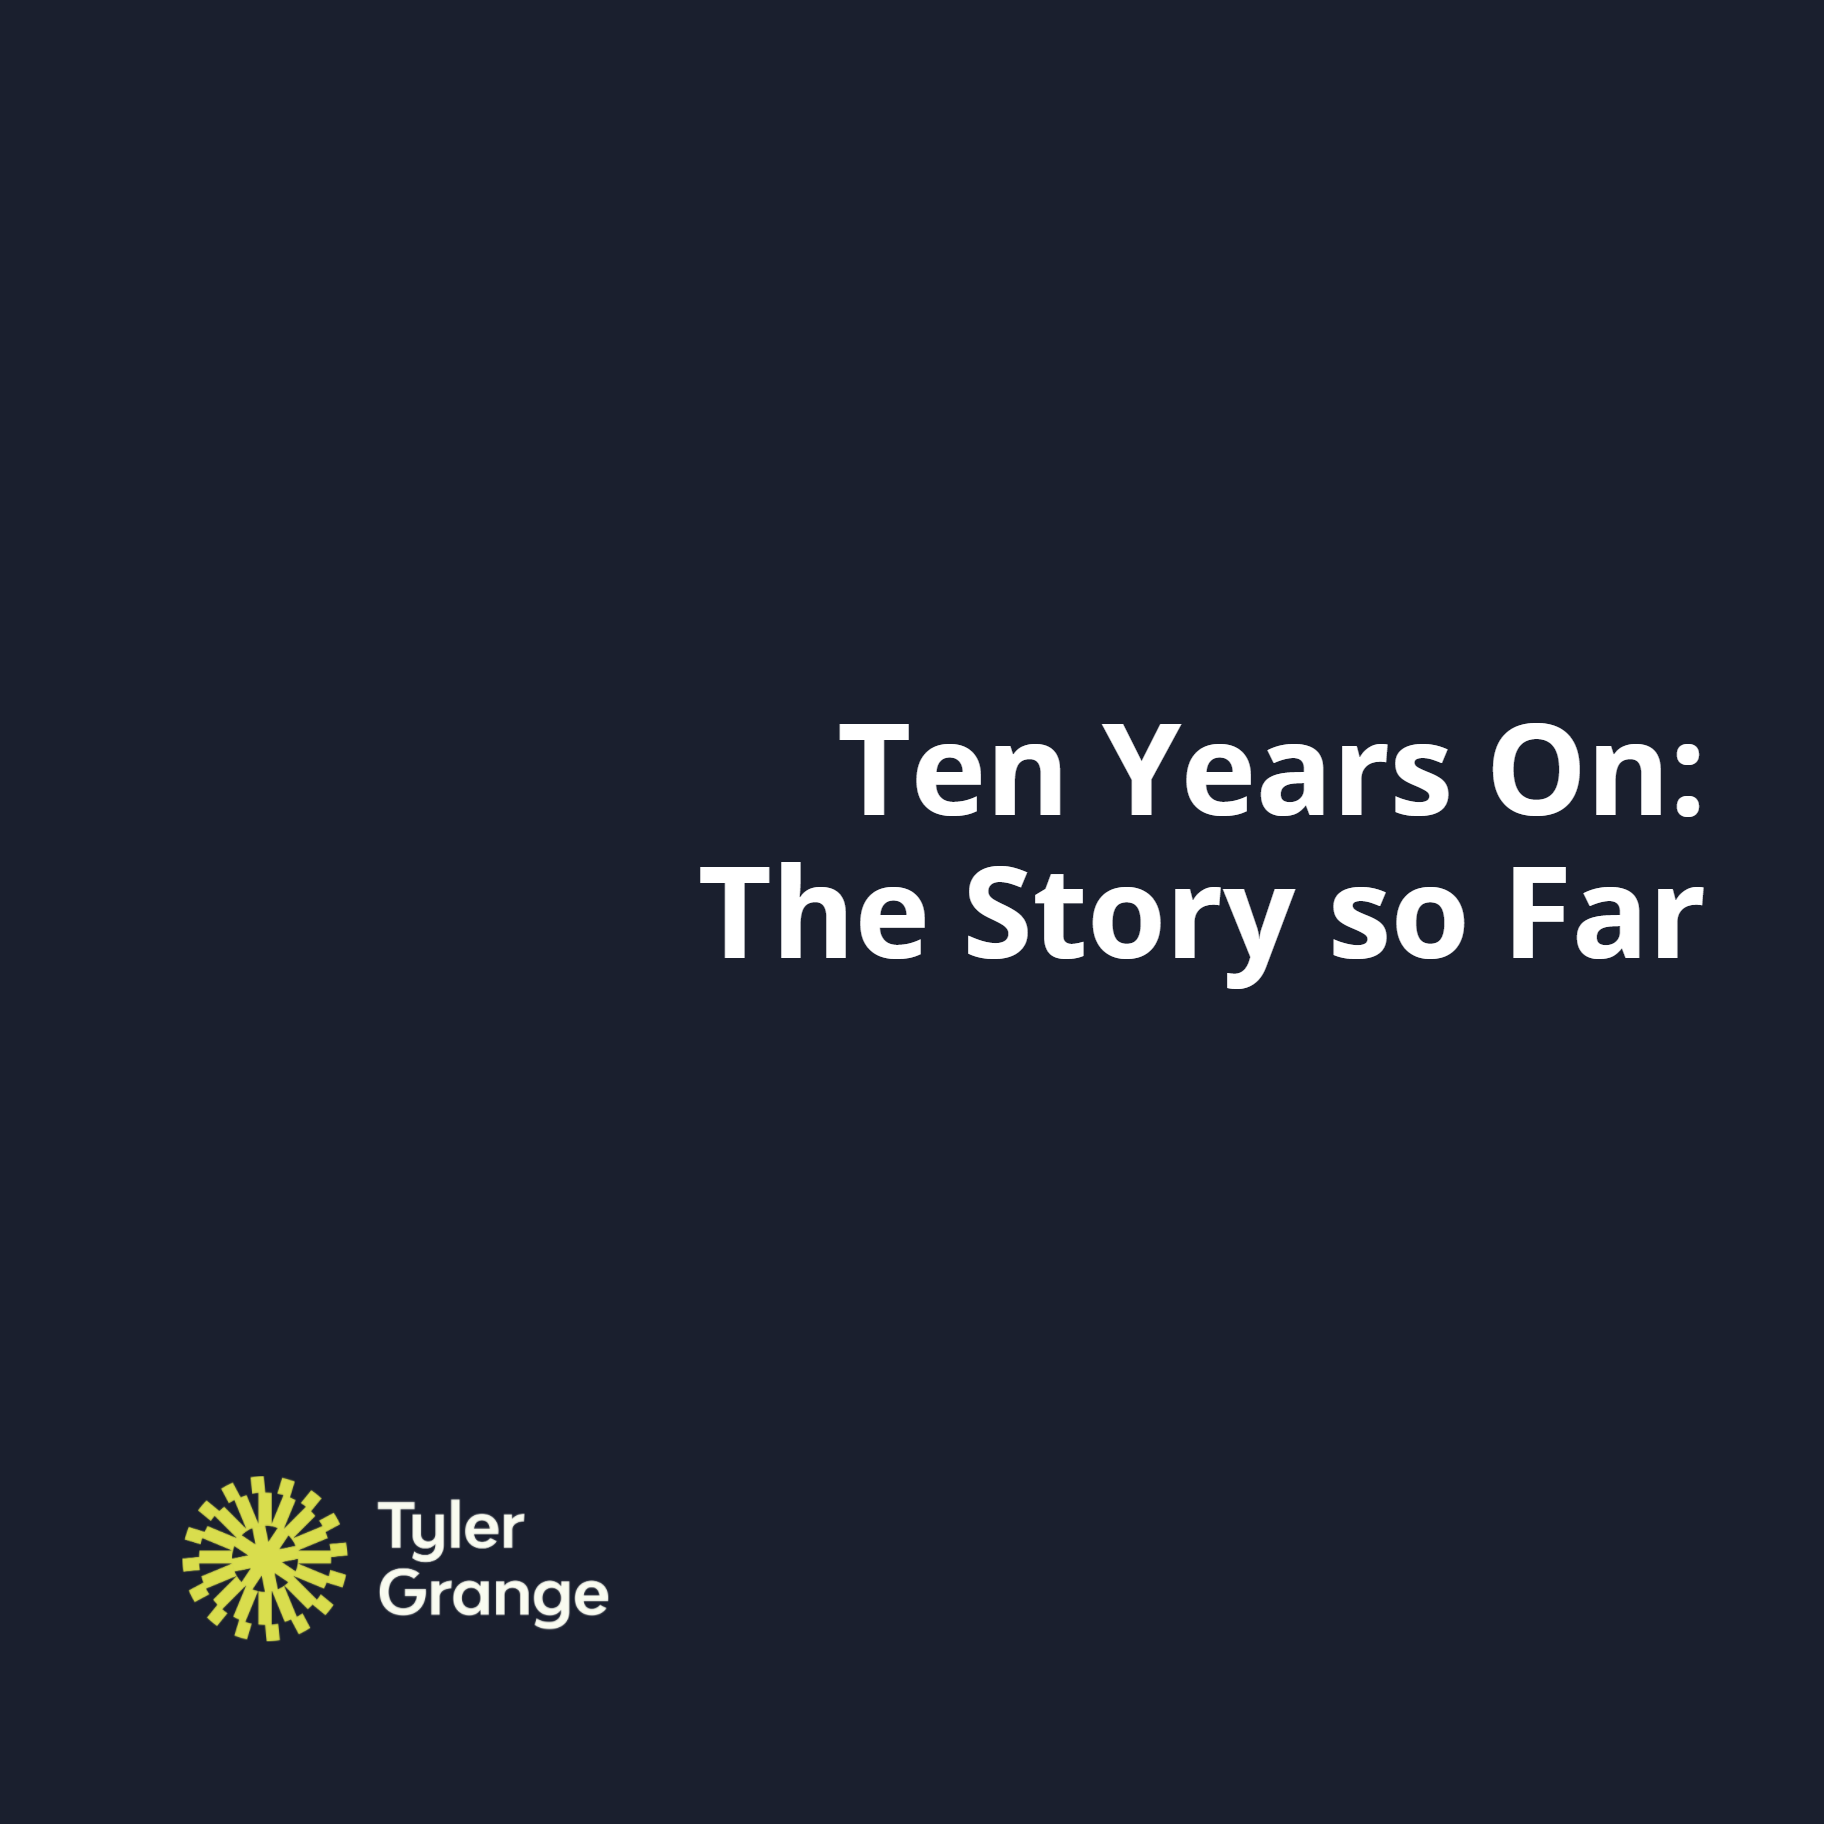 Ten years on - the story so far